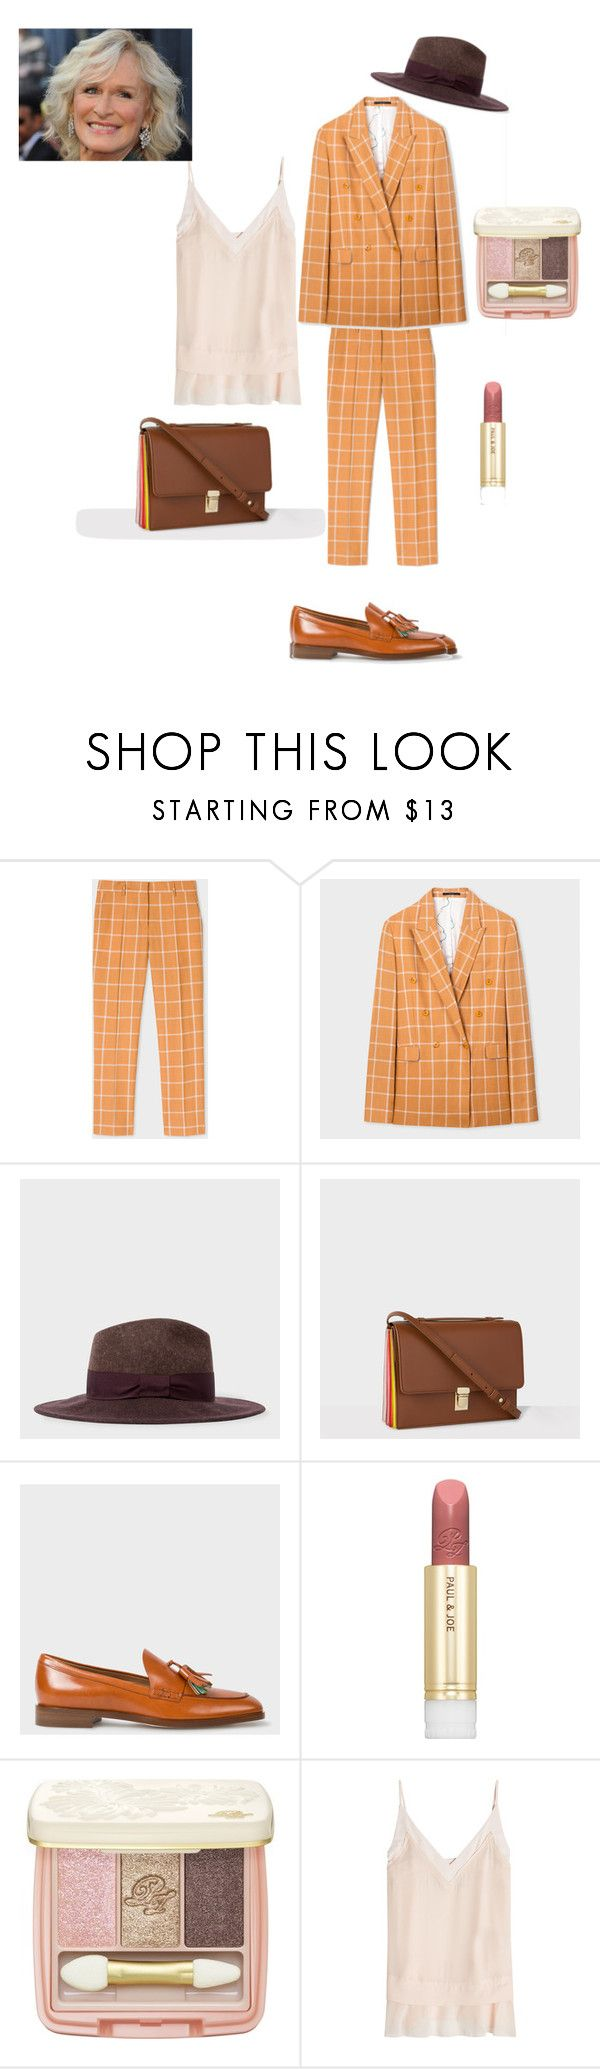 """""""Albert Nobbs"""" by chauert ❤ liked on Polyvore featuring Paul Smith, Paul & Joe and By Malene Birger"""